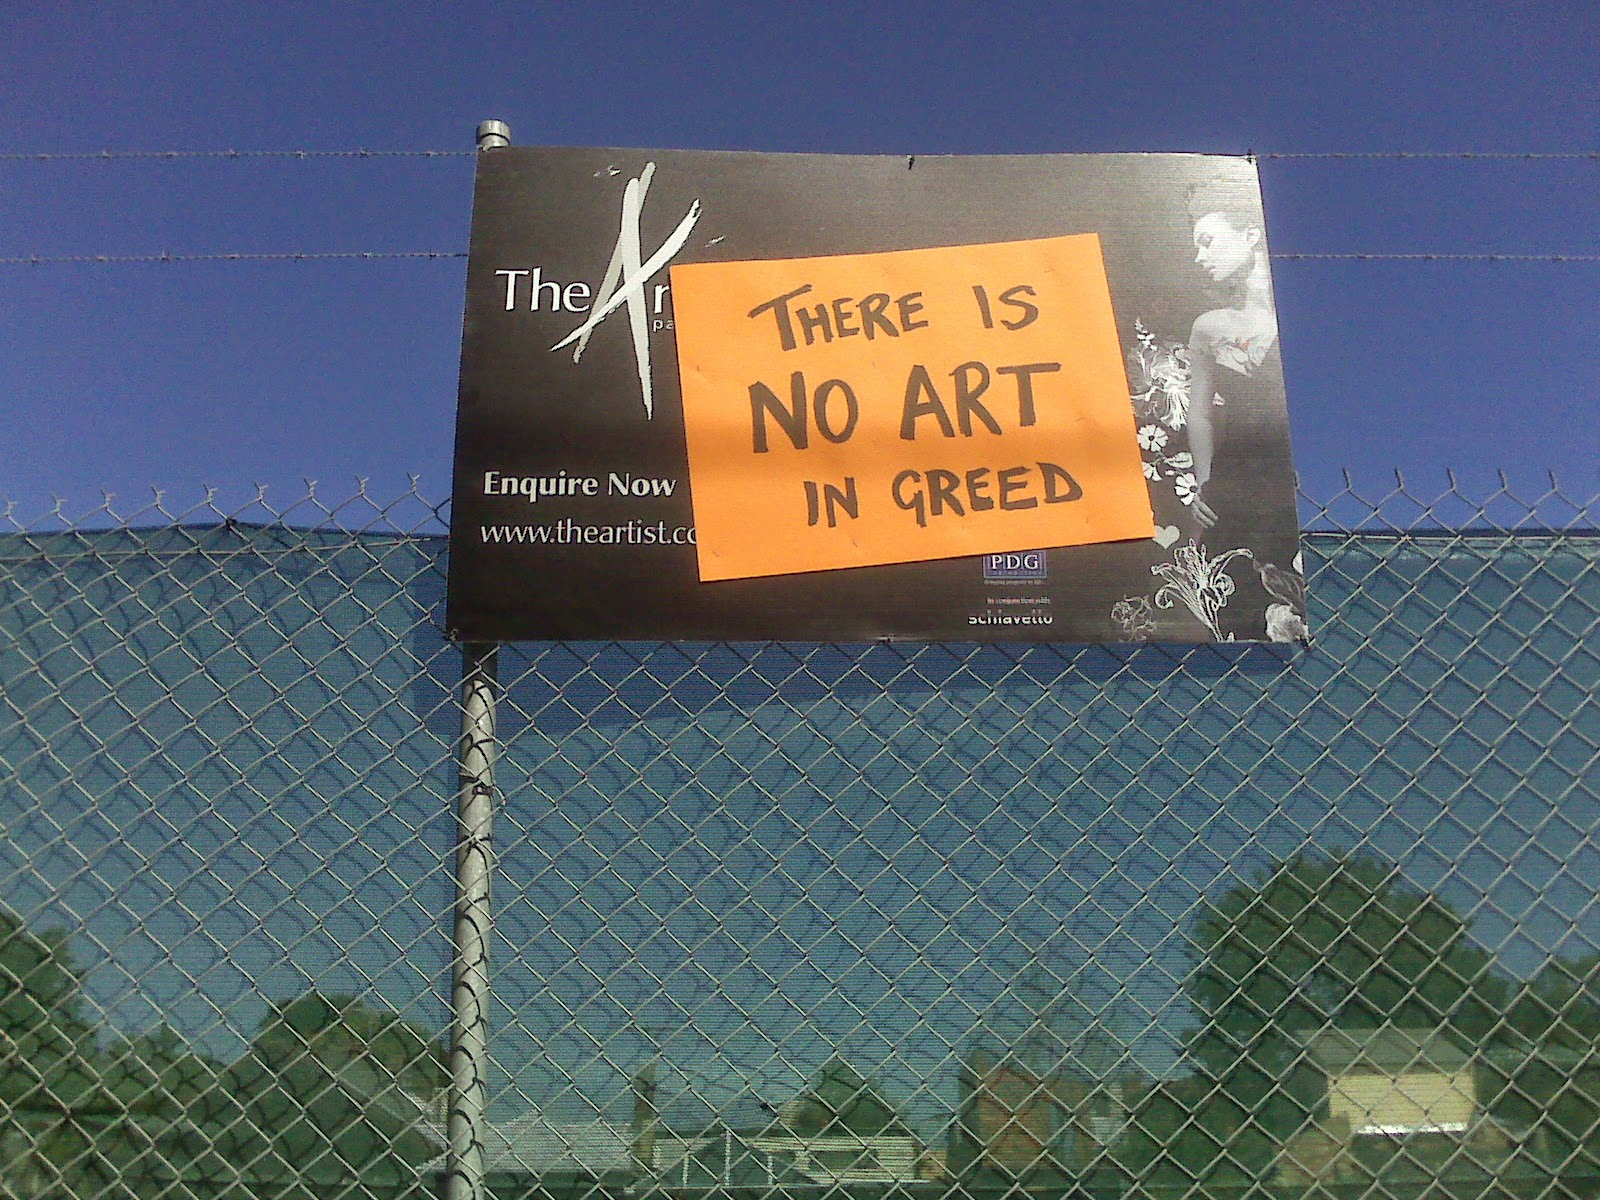 there is no Art in greed